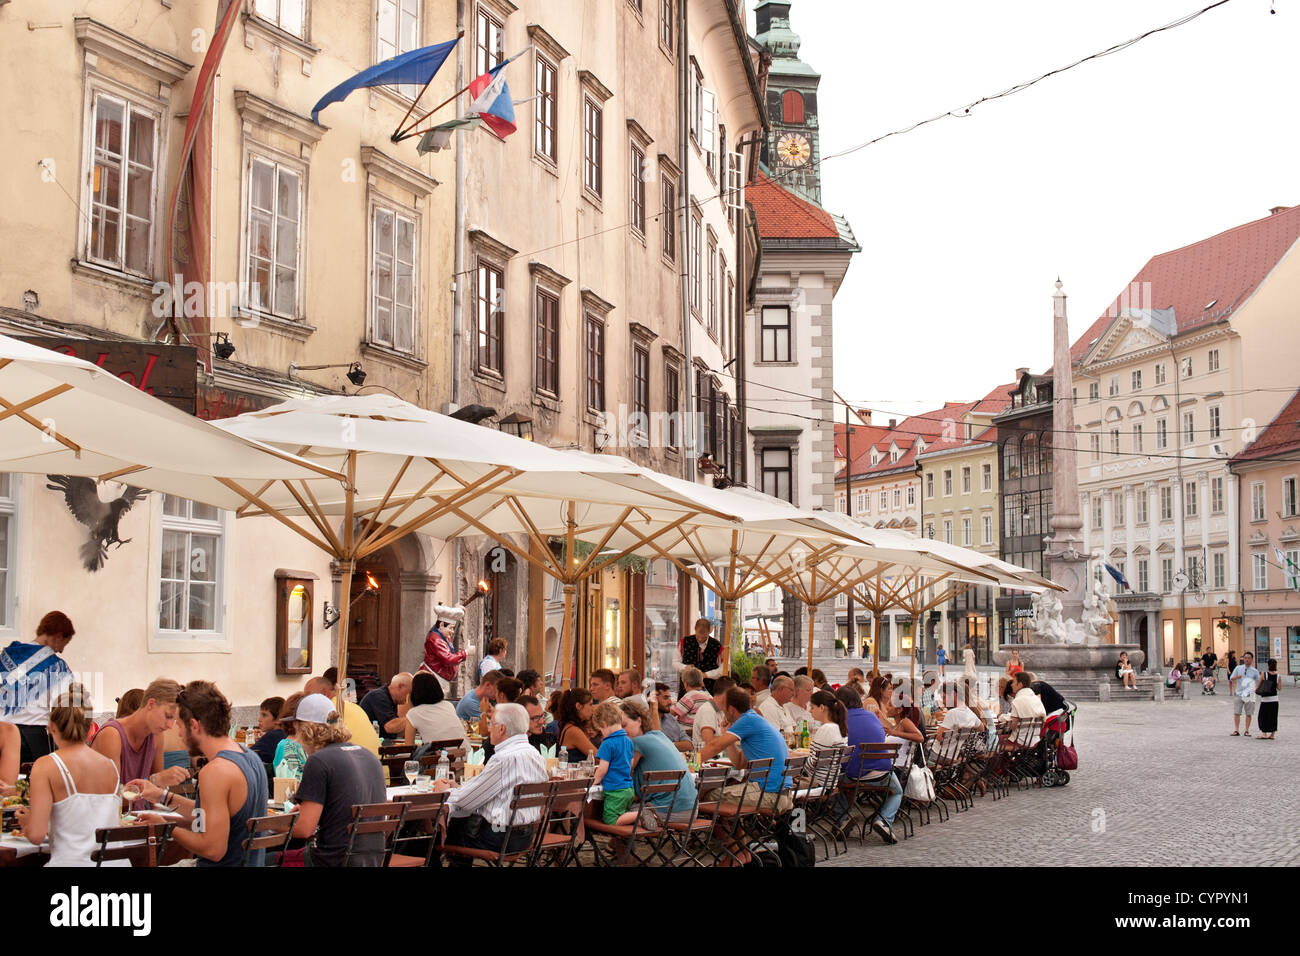 Sidewalk cafés in the old town in Ljubljana, the capital of Slovenia. Stock Photo